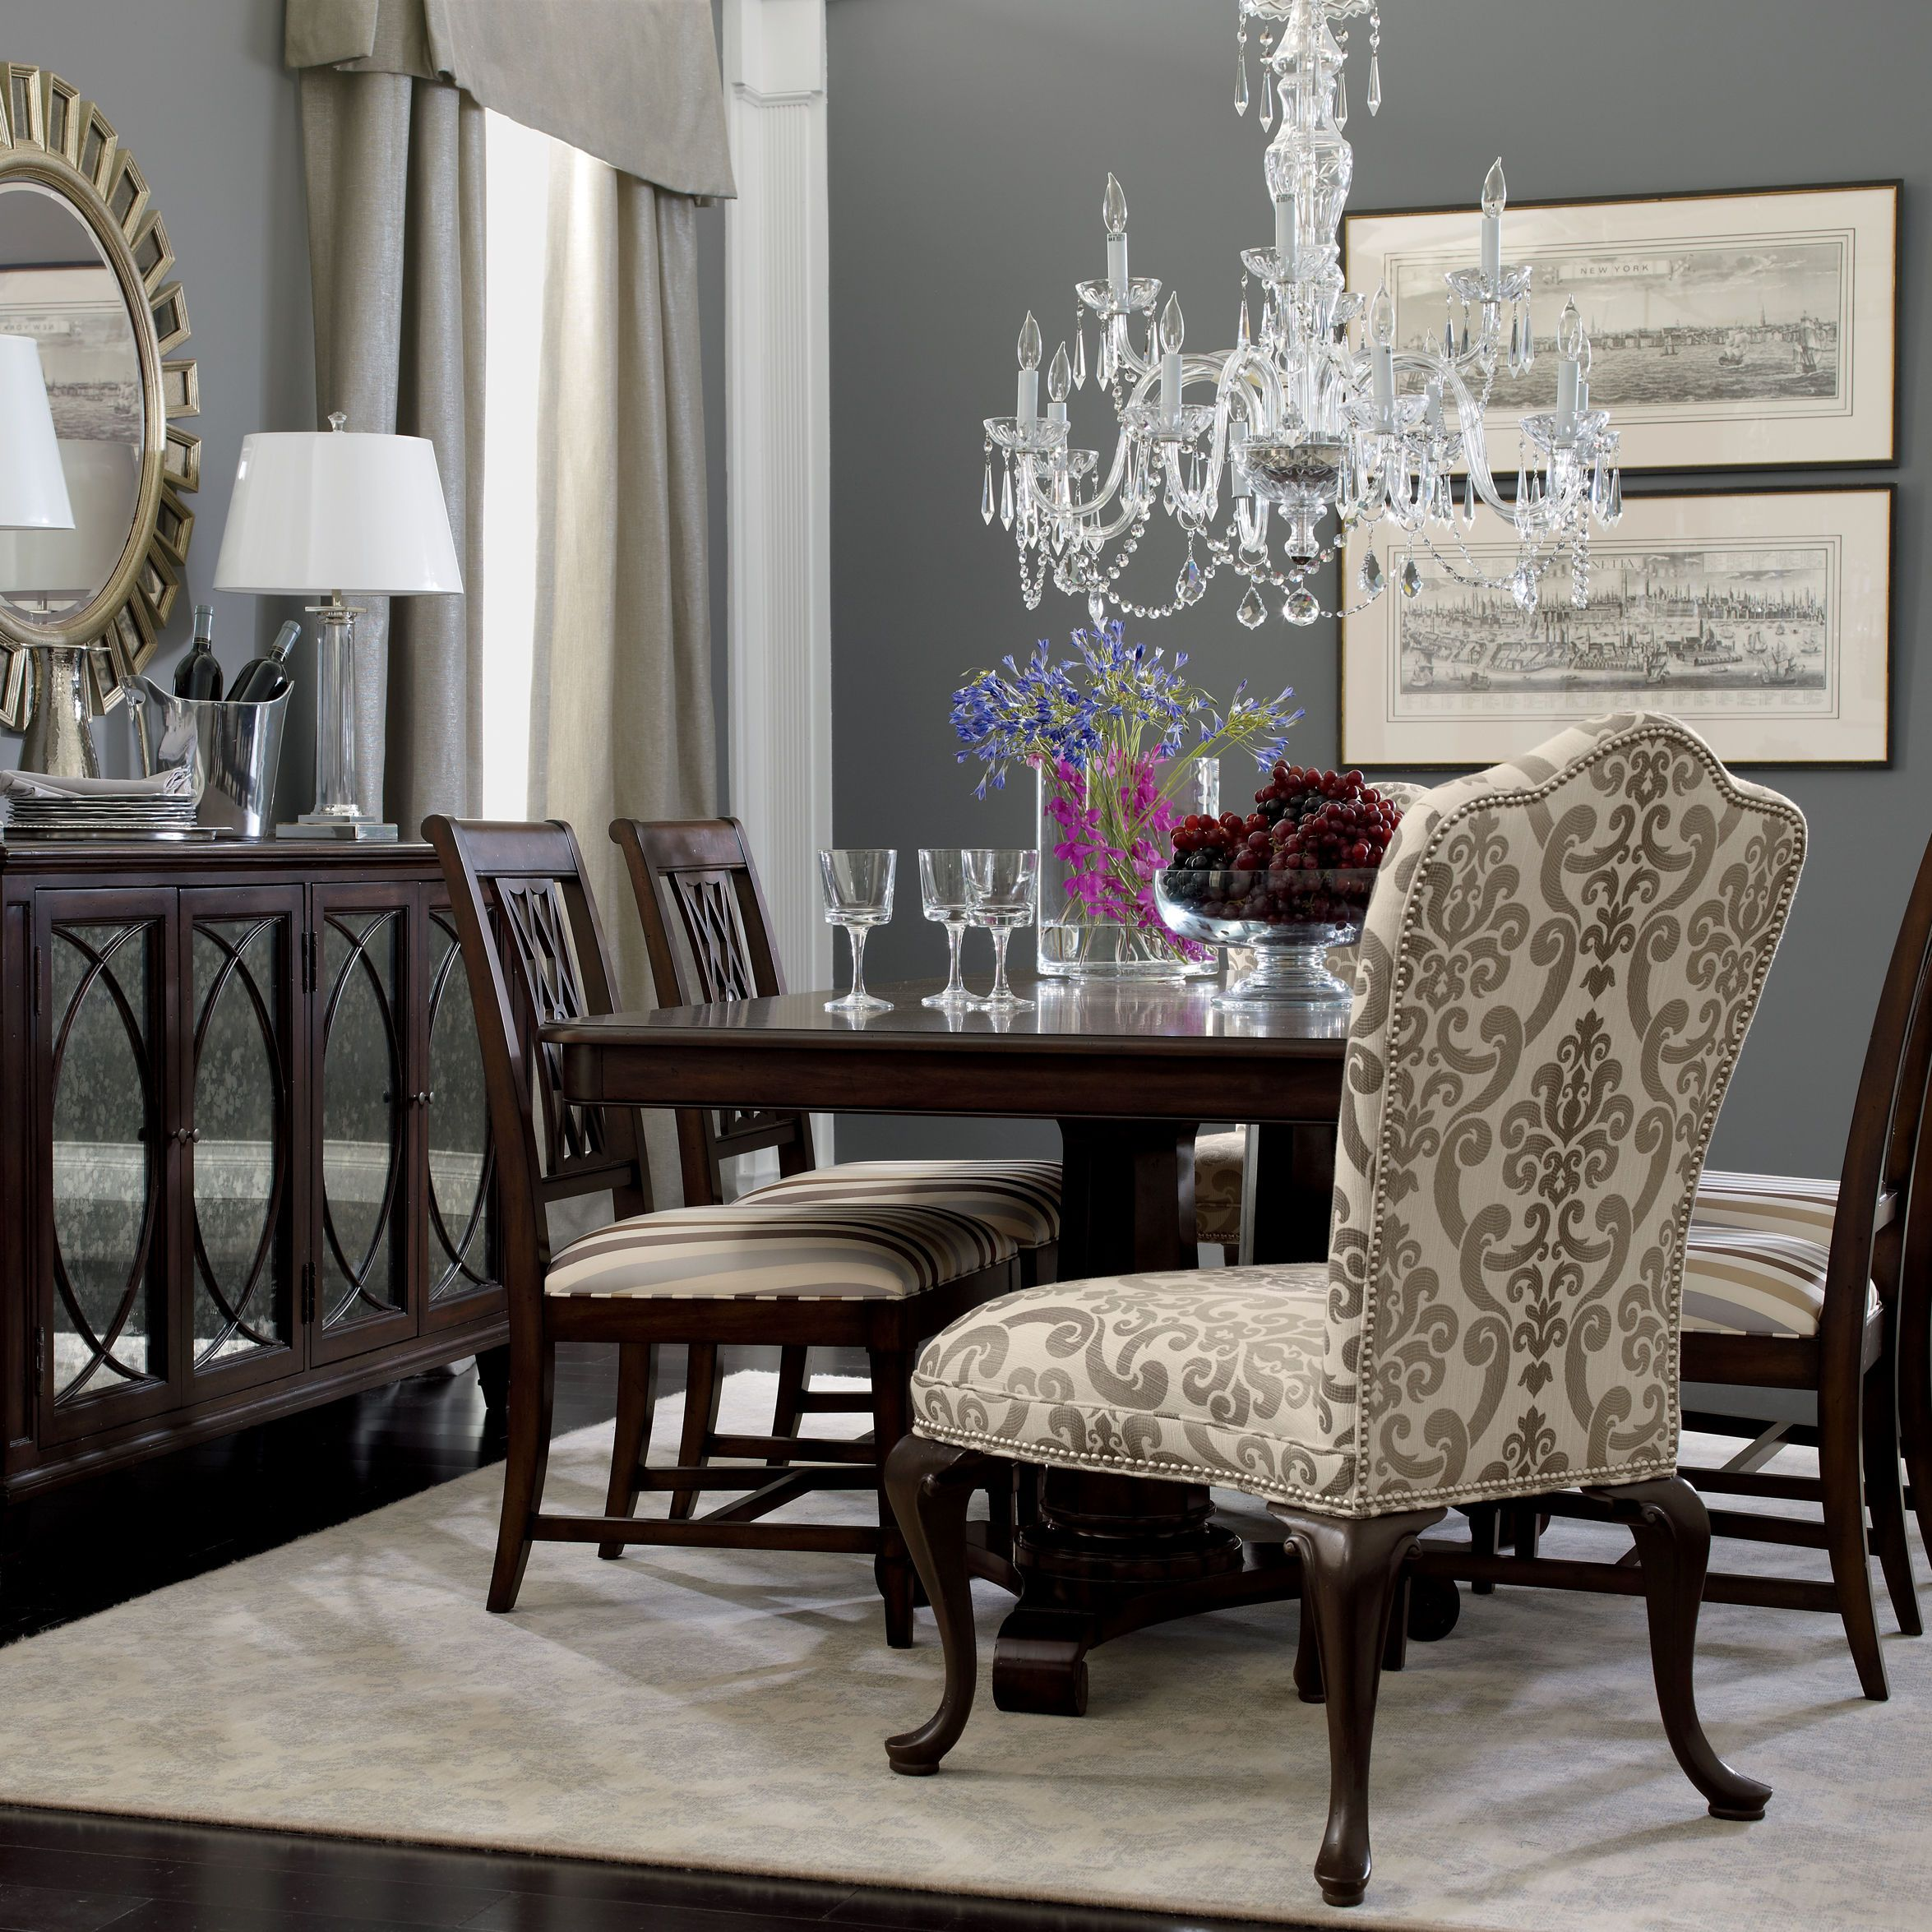 Ethan Allen Dining Room Sets: Sanders Dining Table - Ethan Allen US